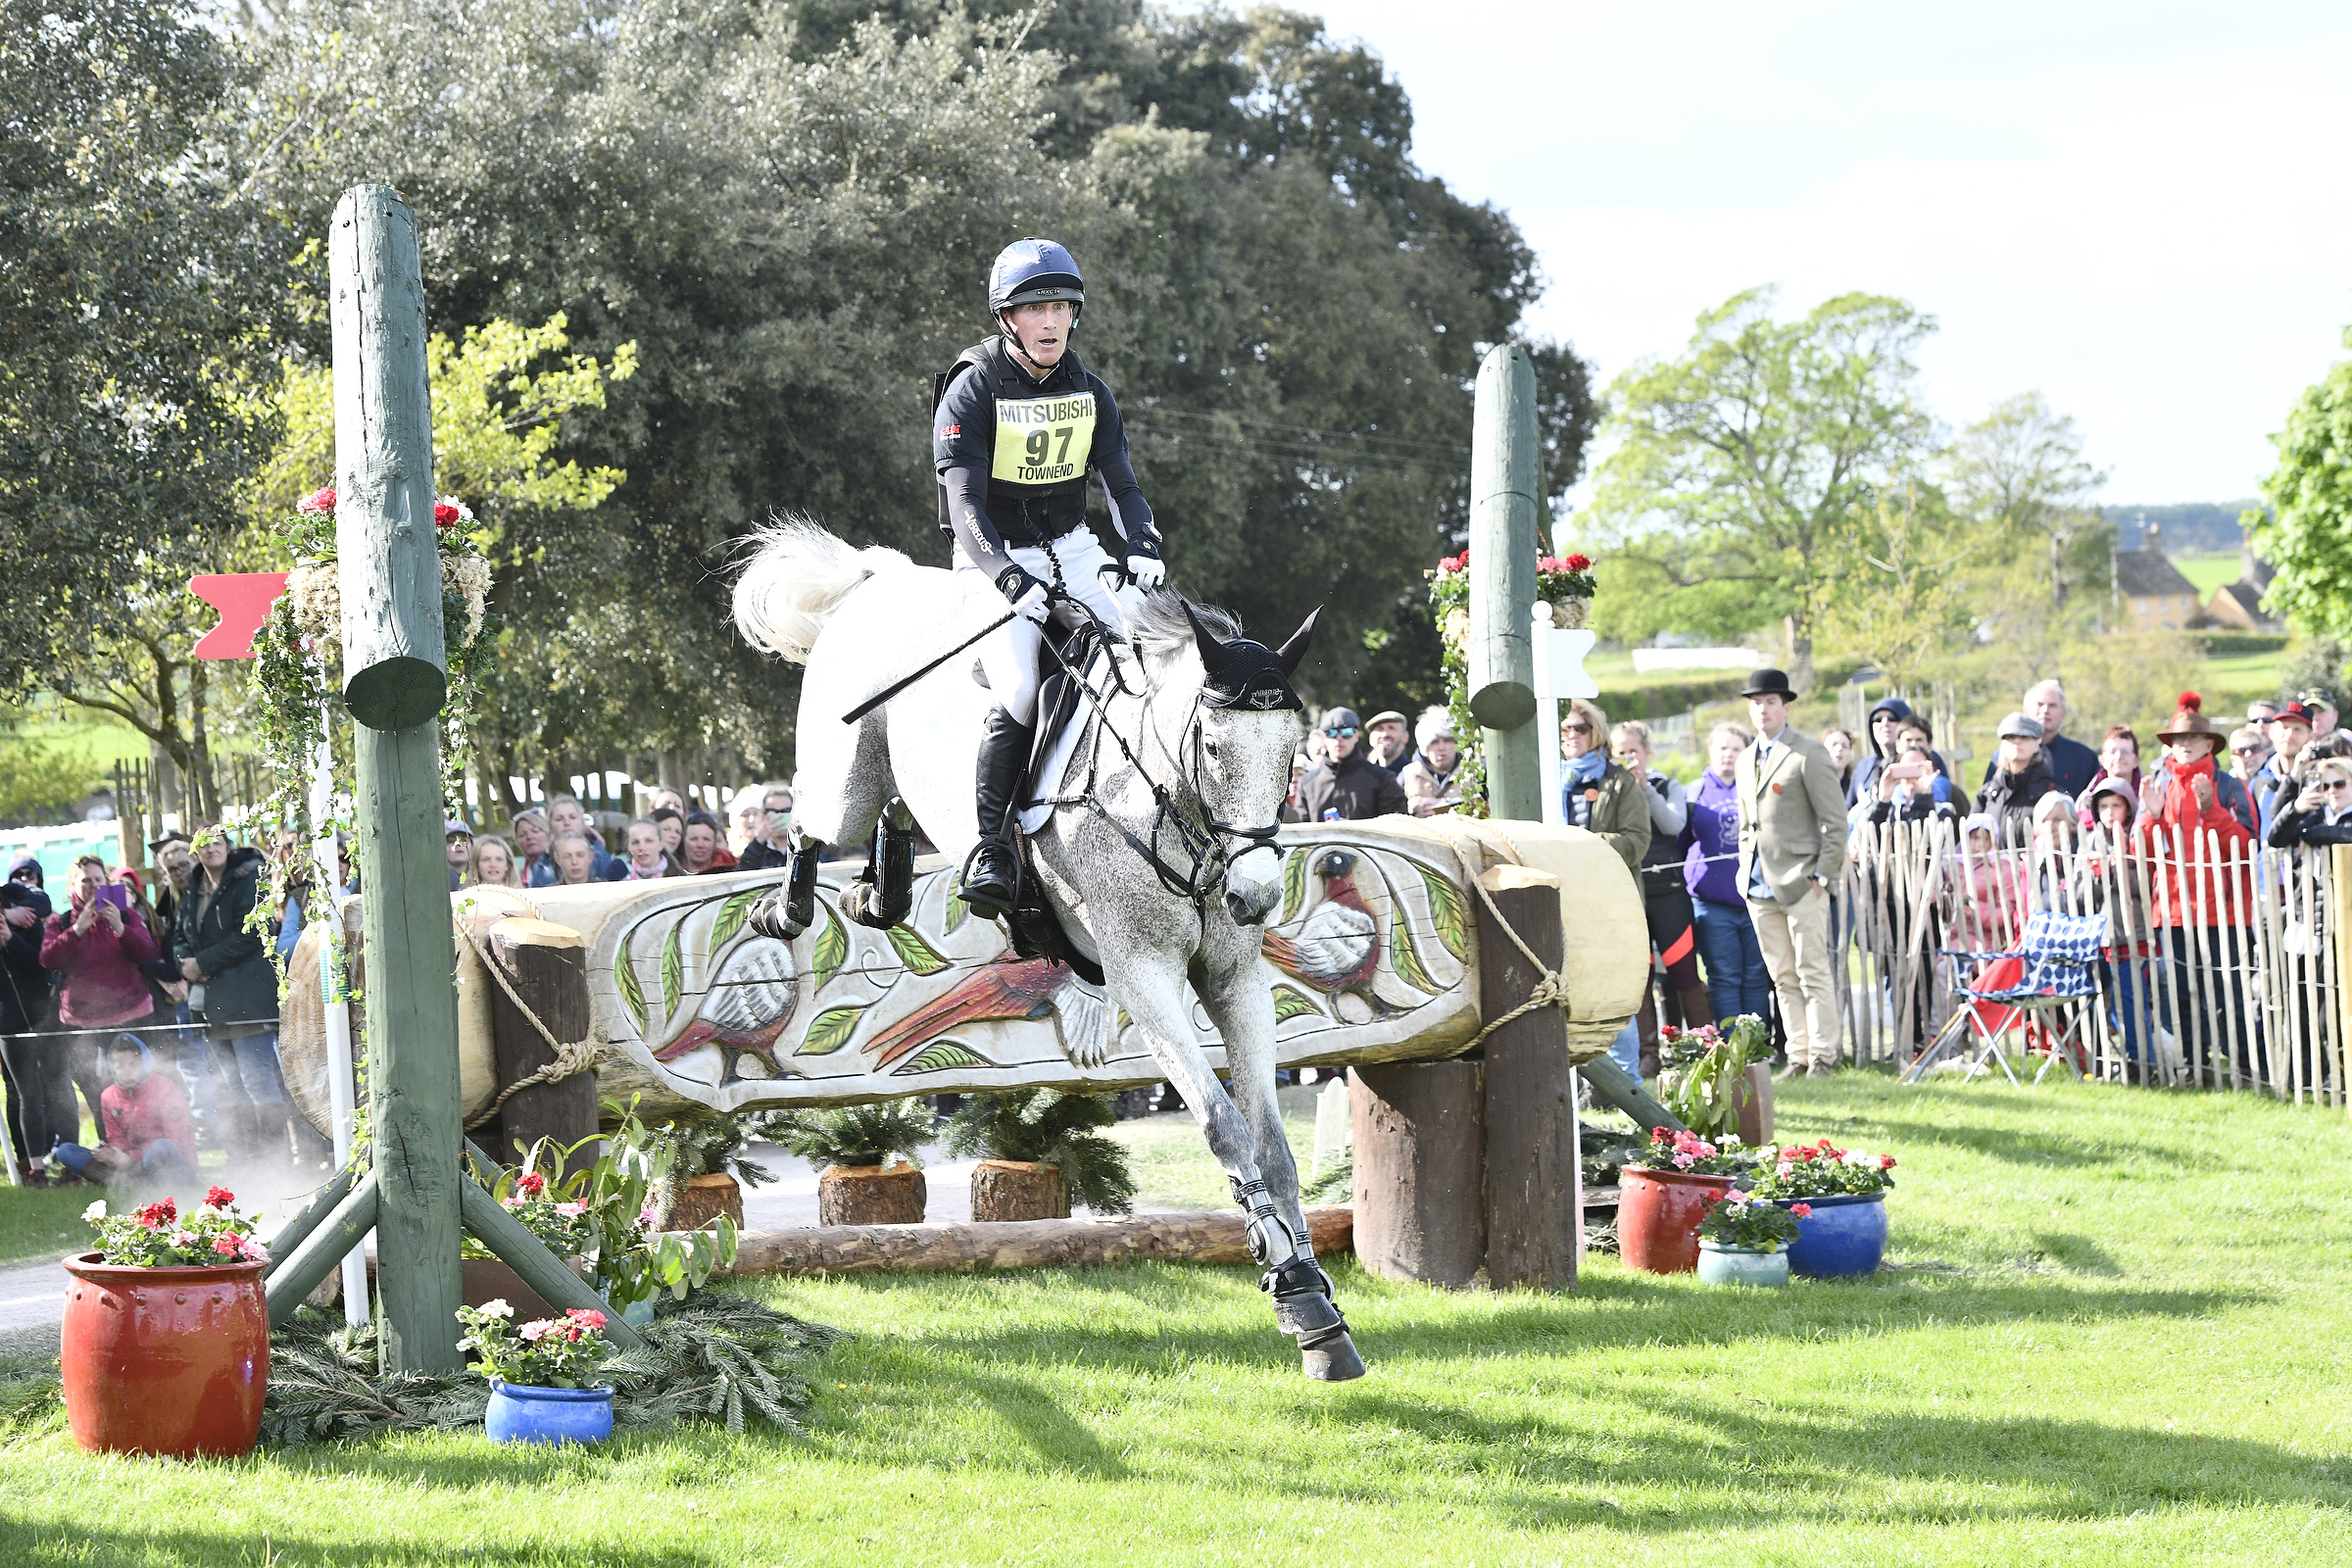 1, Ballaghmor Class - Oliver Townend GBR (21.5pens)